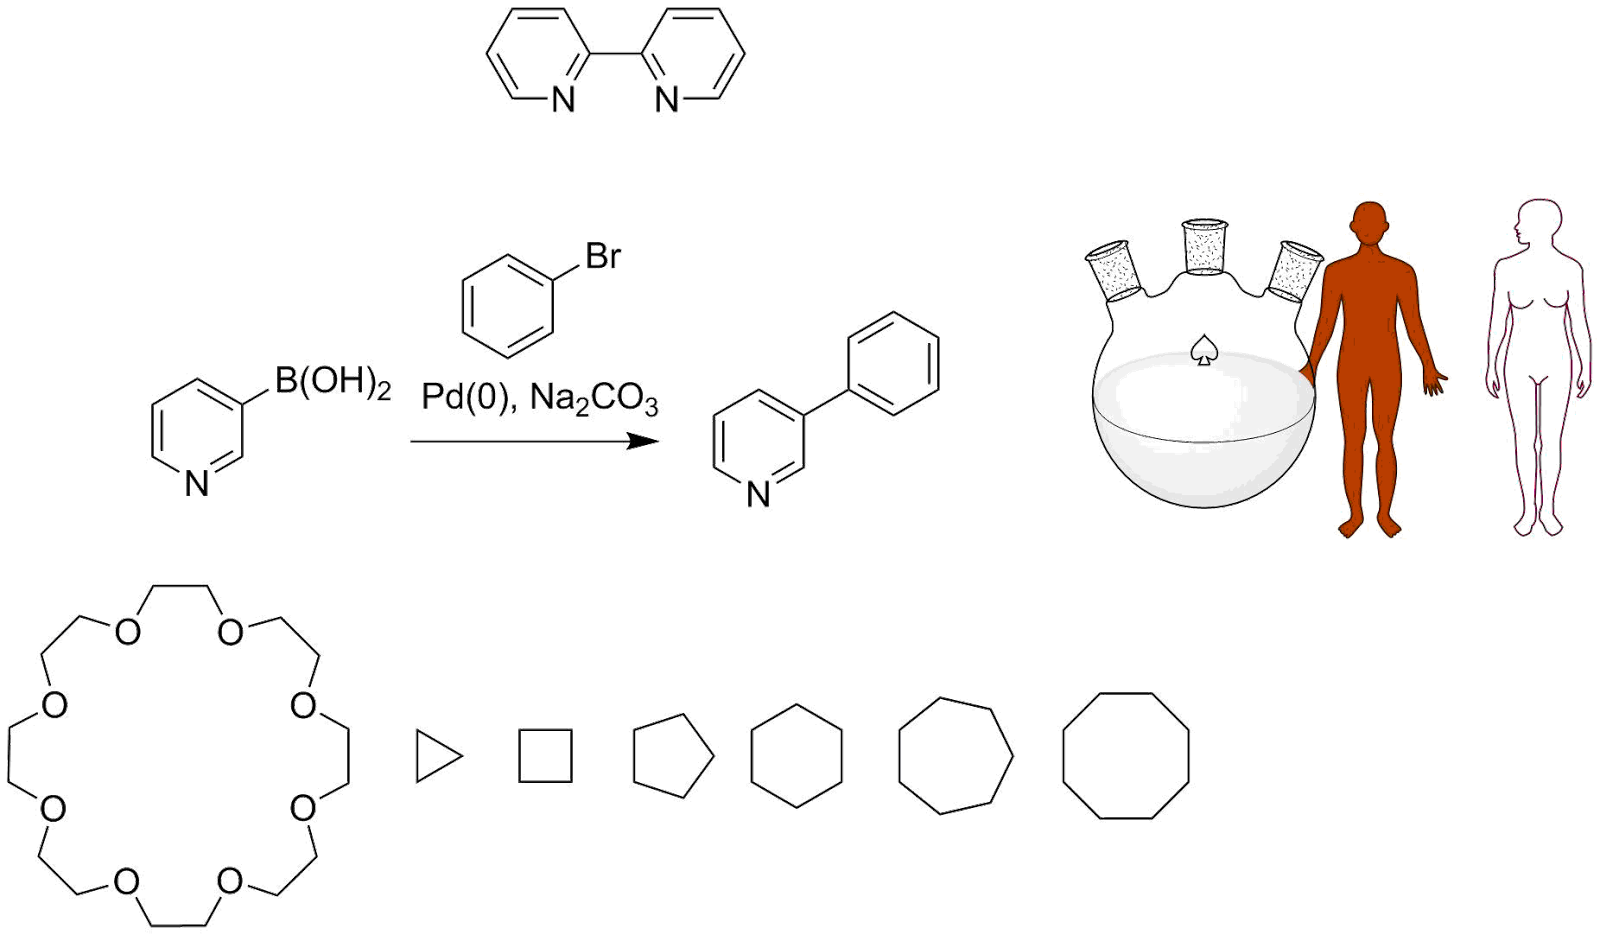 Stupid drawing professional. Chemjobber product review chemdraw